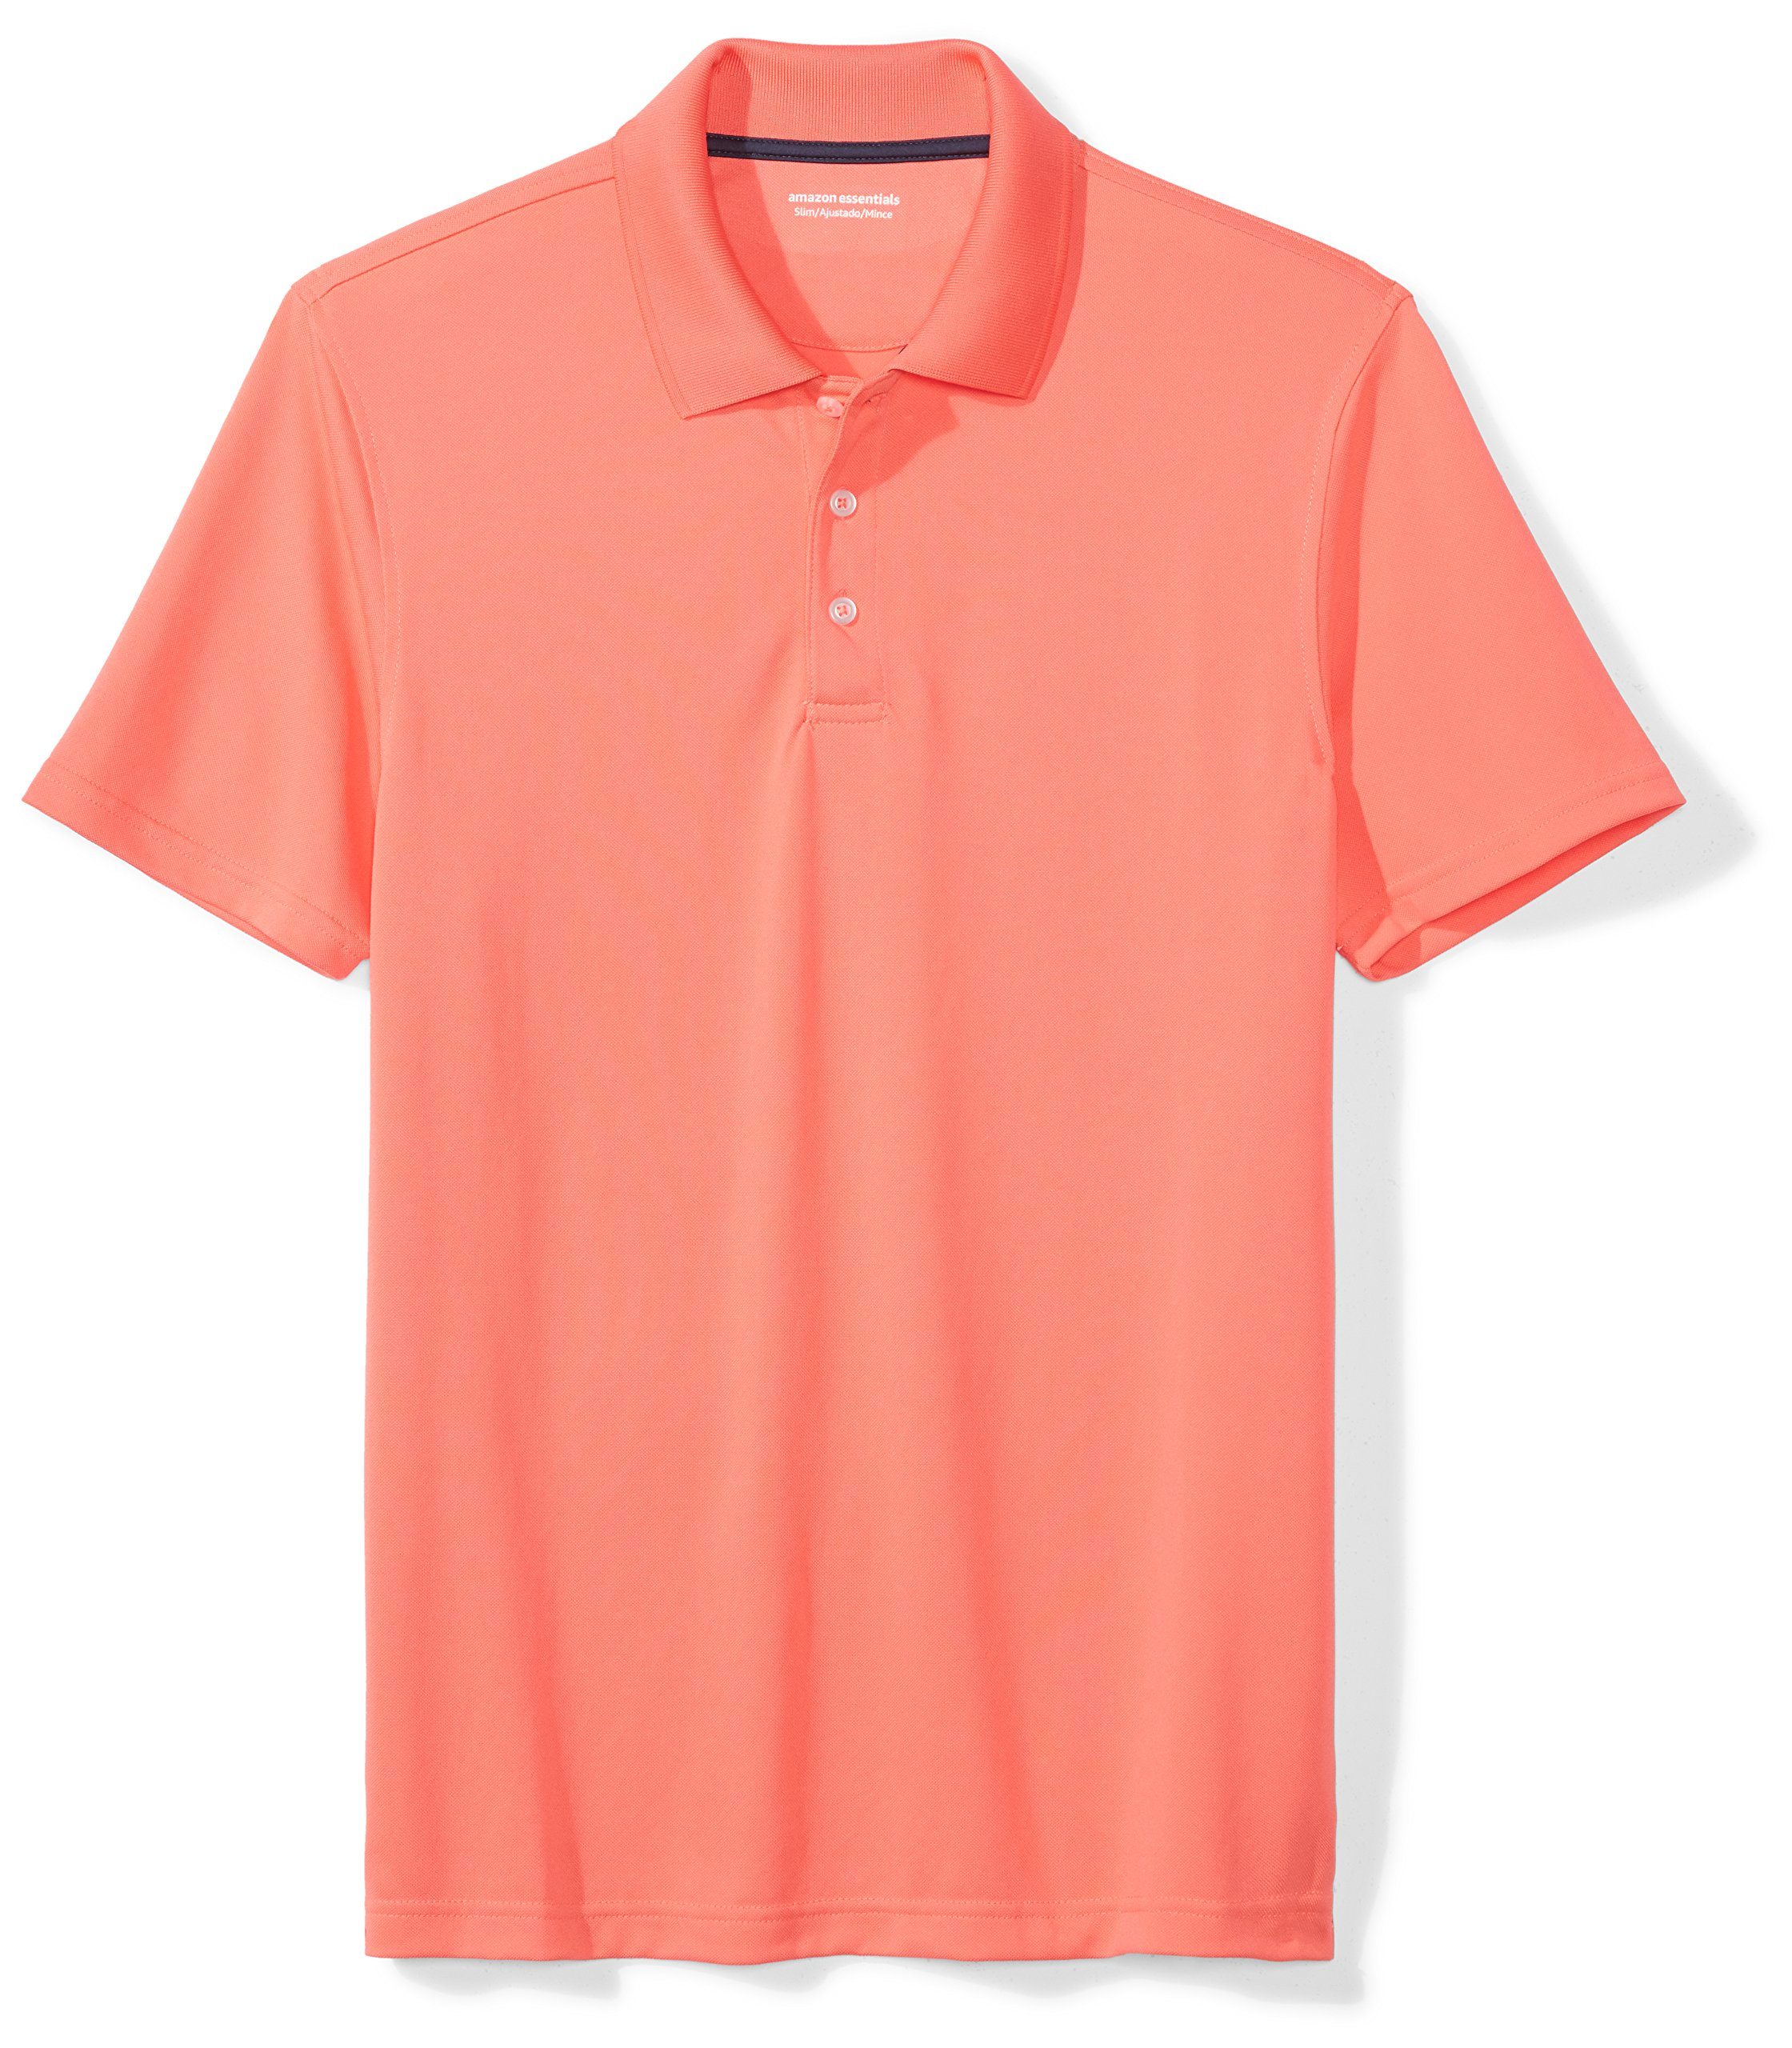 Amazon Essentials Men's Slim-Fit Quick-Dry Golf Polo Shirt, Coral, Large by Amazon Essentials